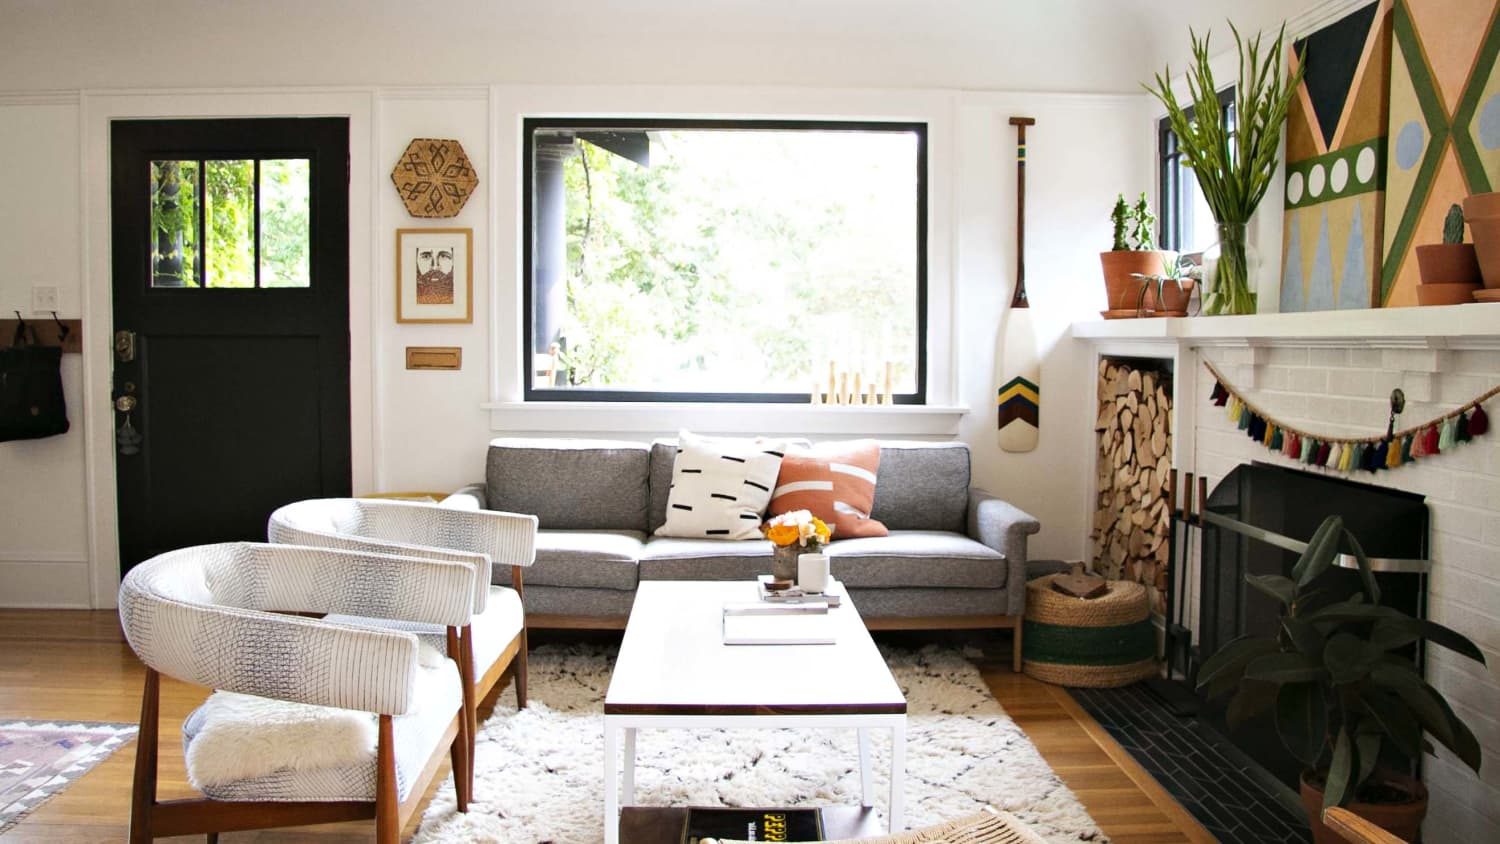 6 Things You Don T Actually Need On Your Coffee Table According To Home Stagers Apartment Therapy